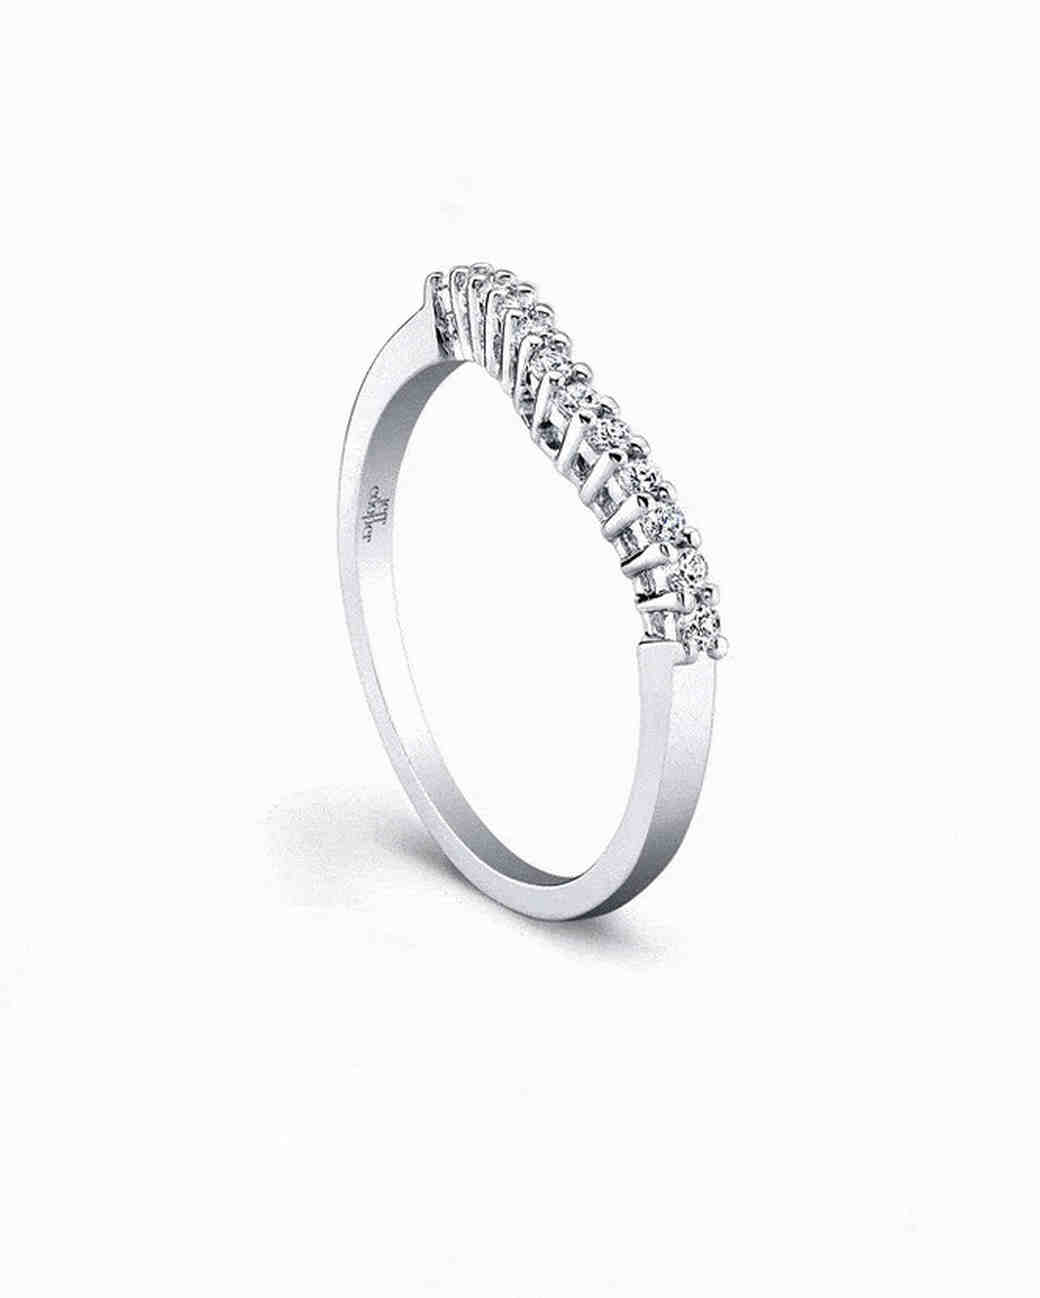 Wedding Bands That Pair Perfectly with Unique Engagement Rings